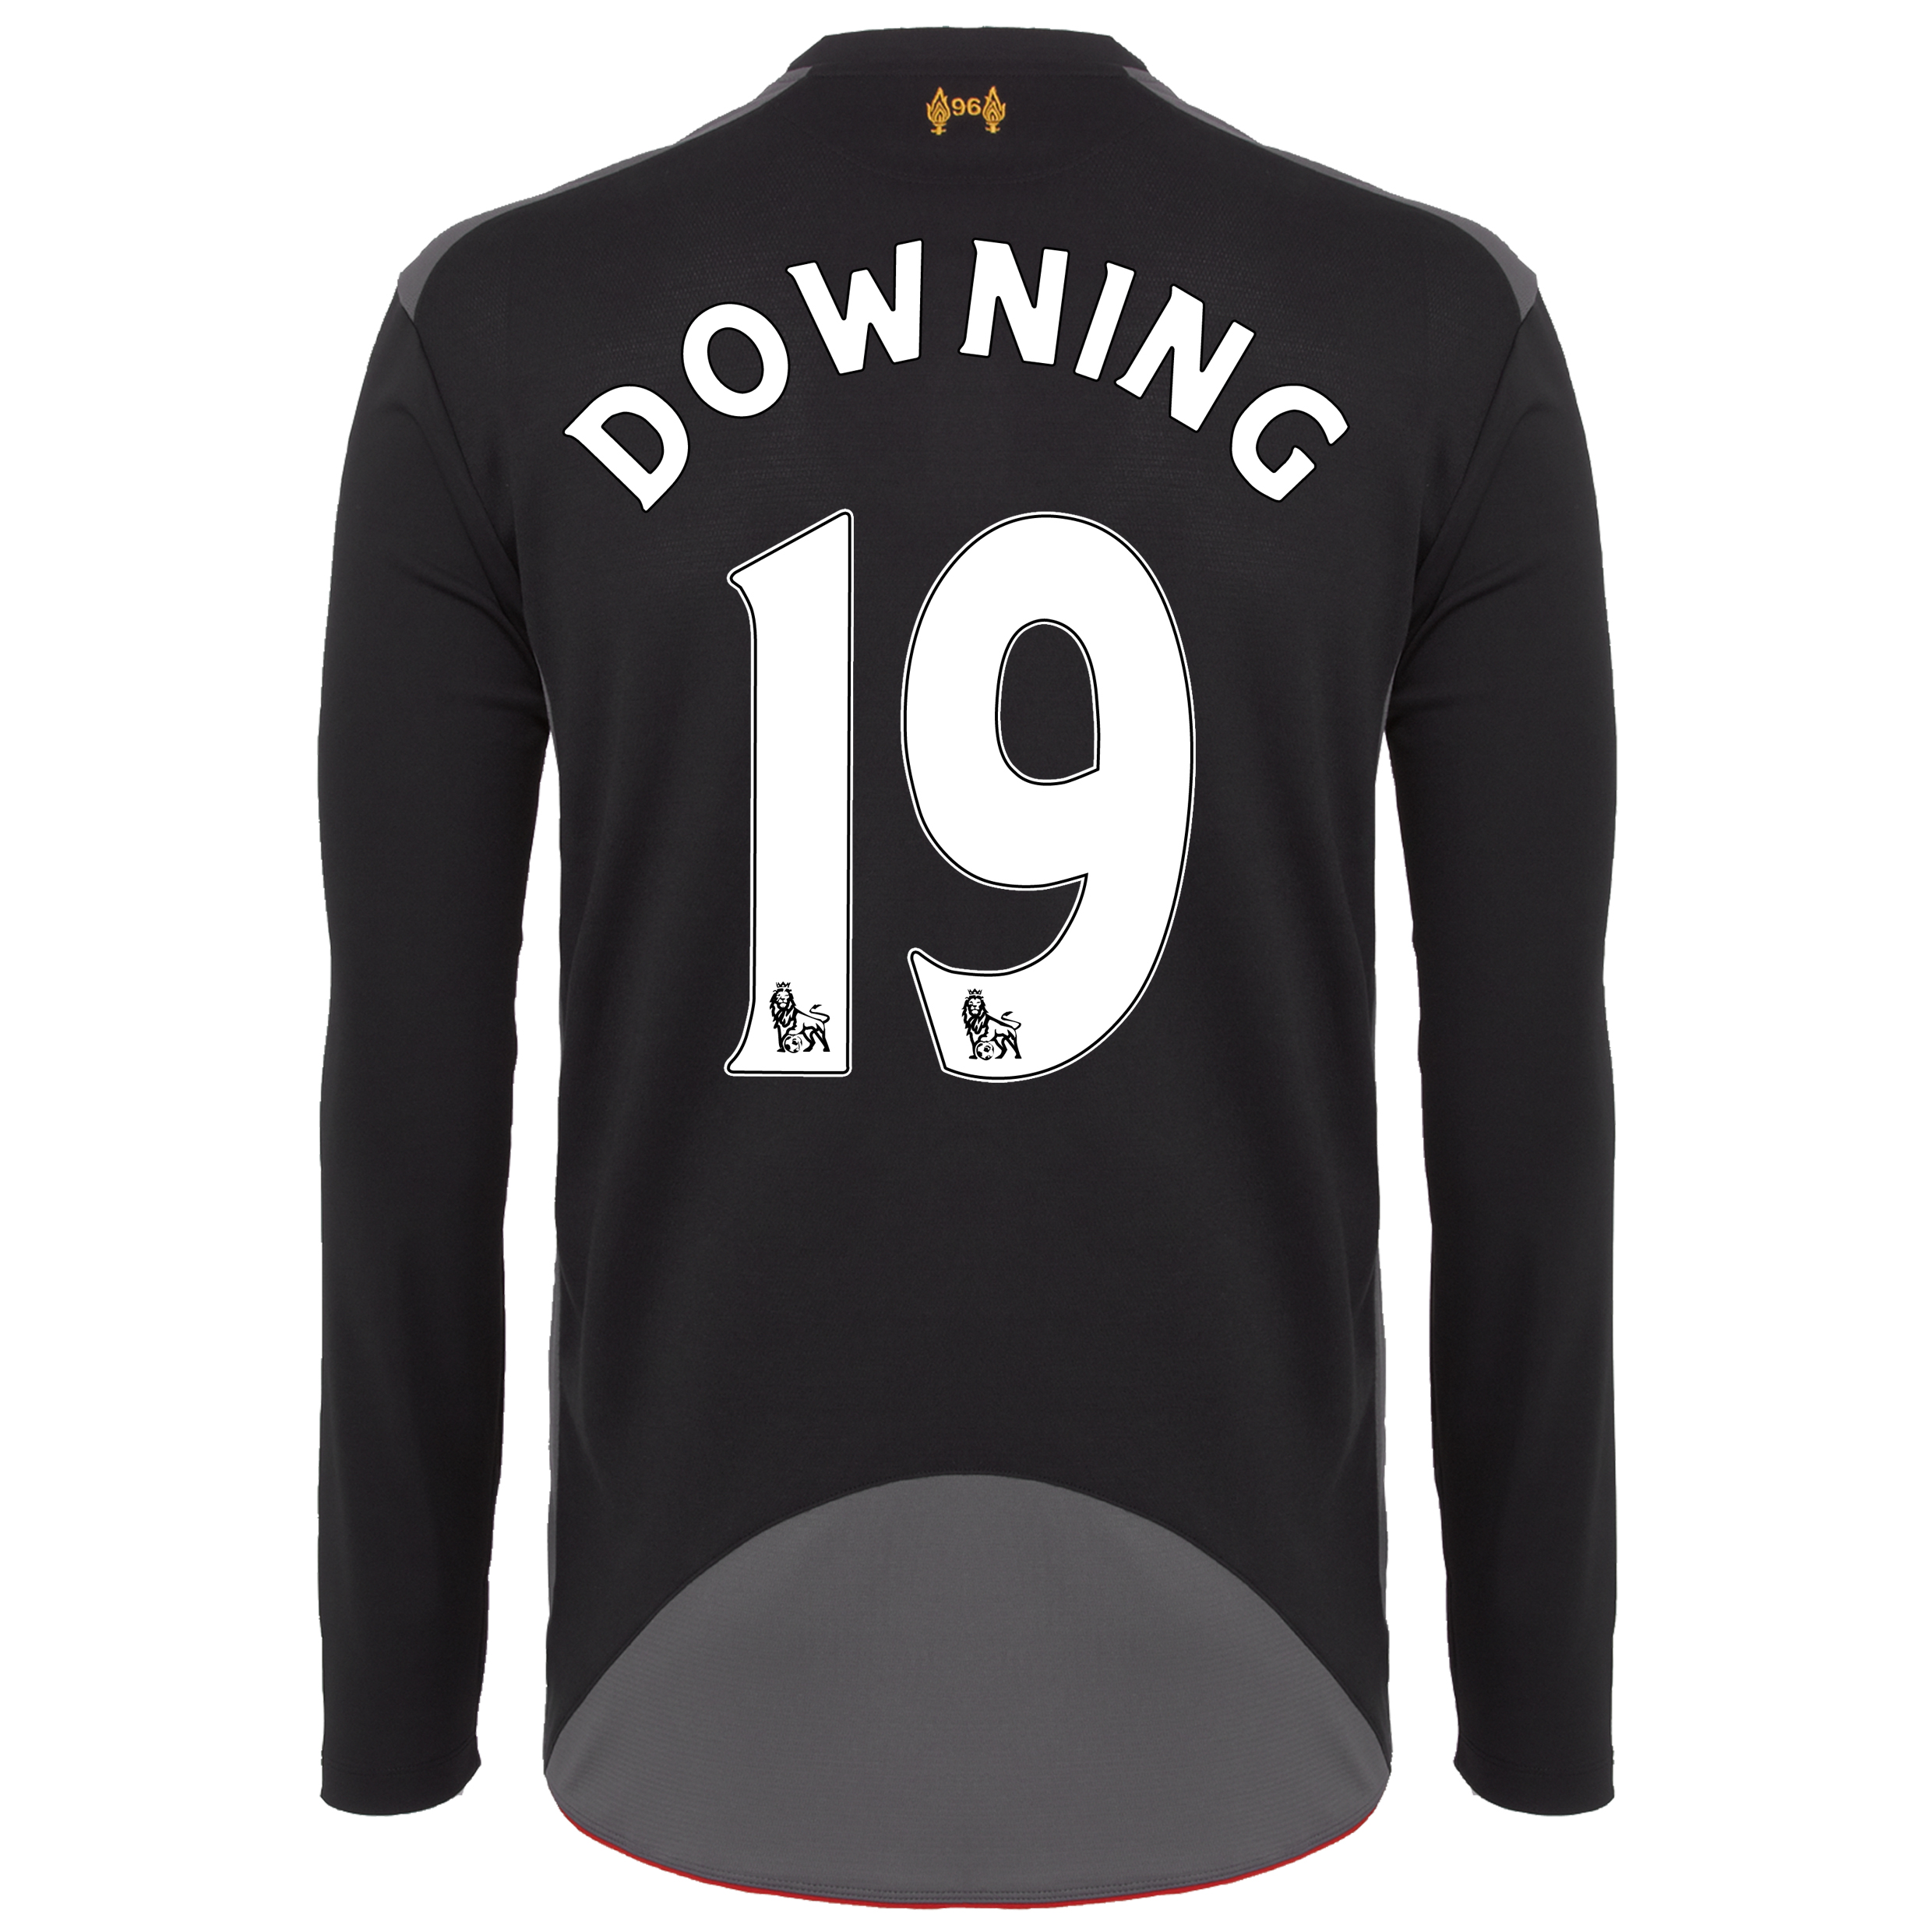 Liverpool Away Shirt 2012/13 - Long Sleeve - Youths with Downing 19 printing